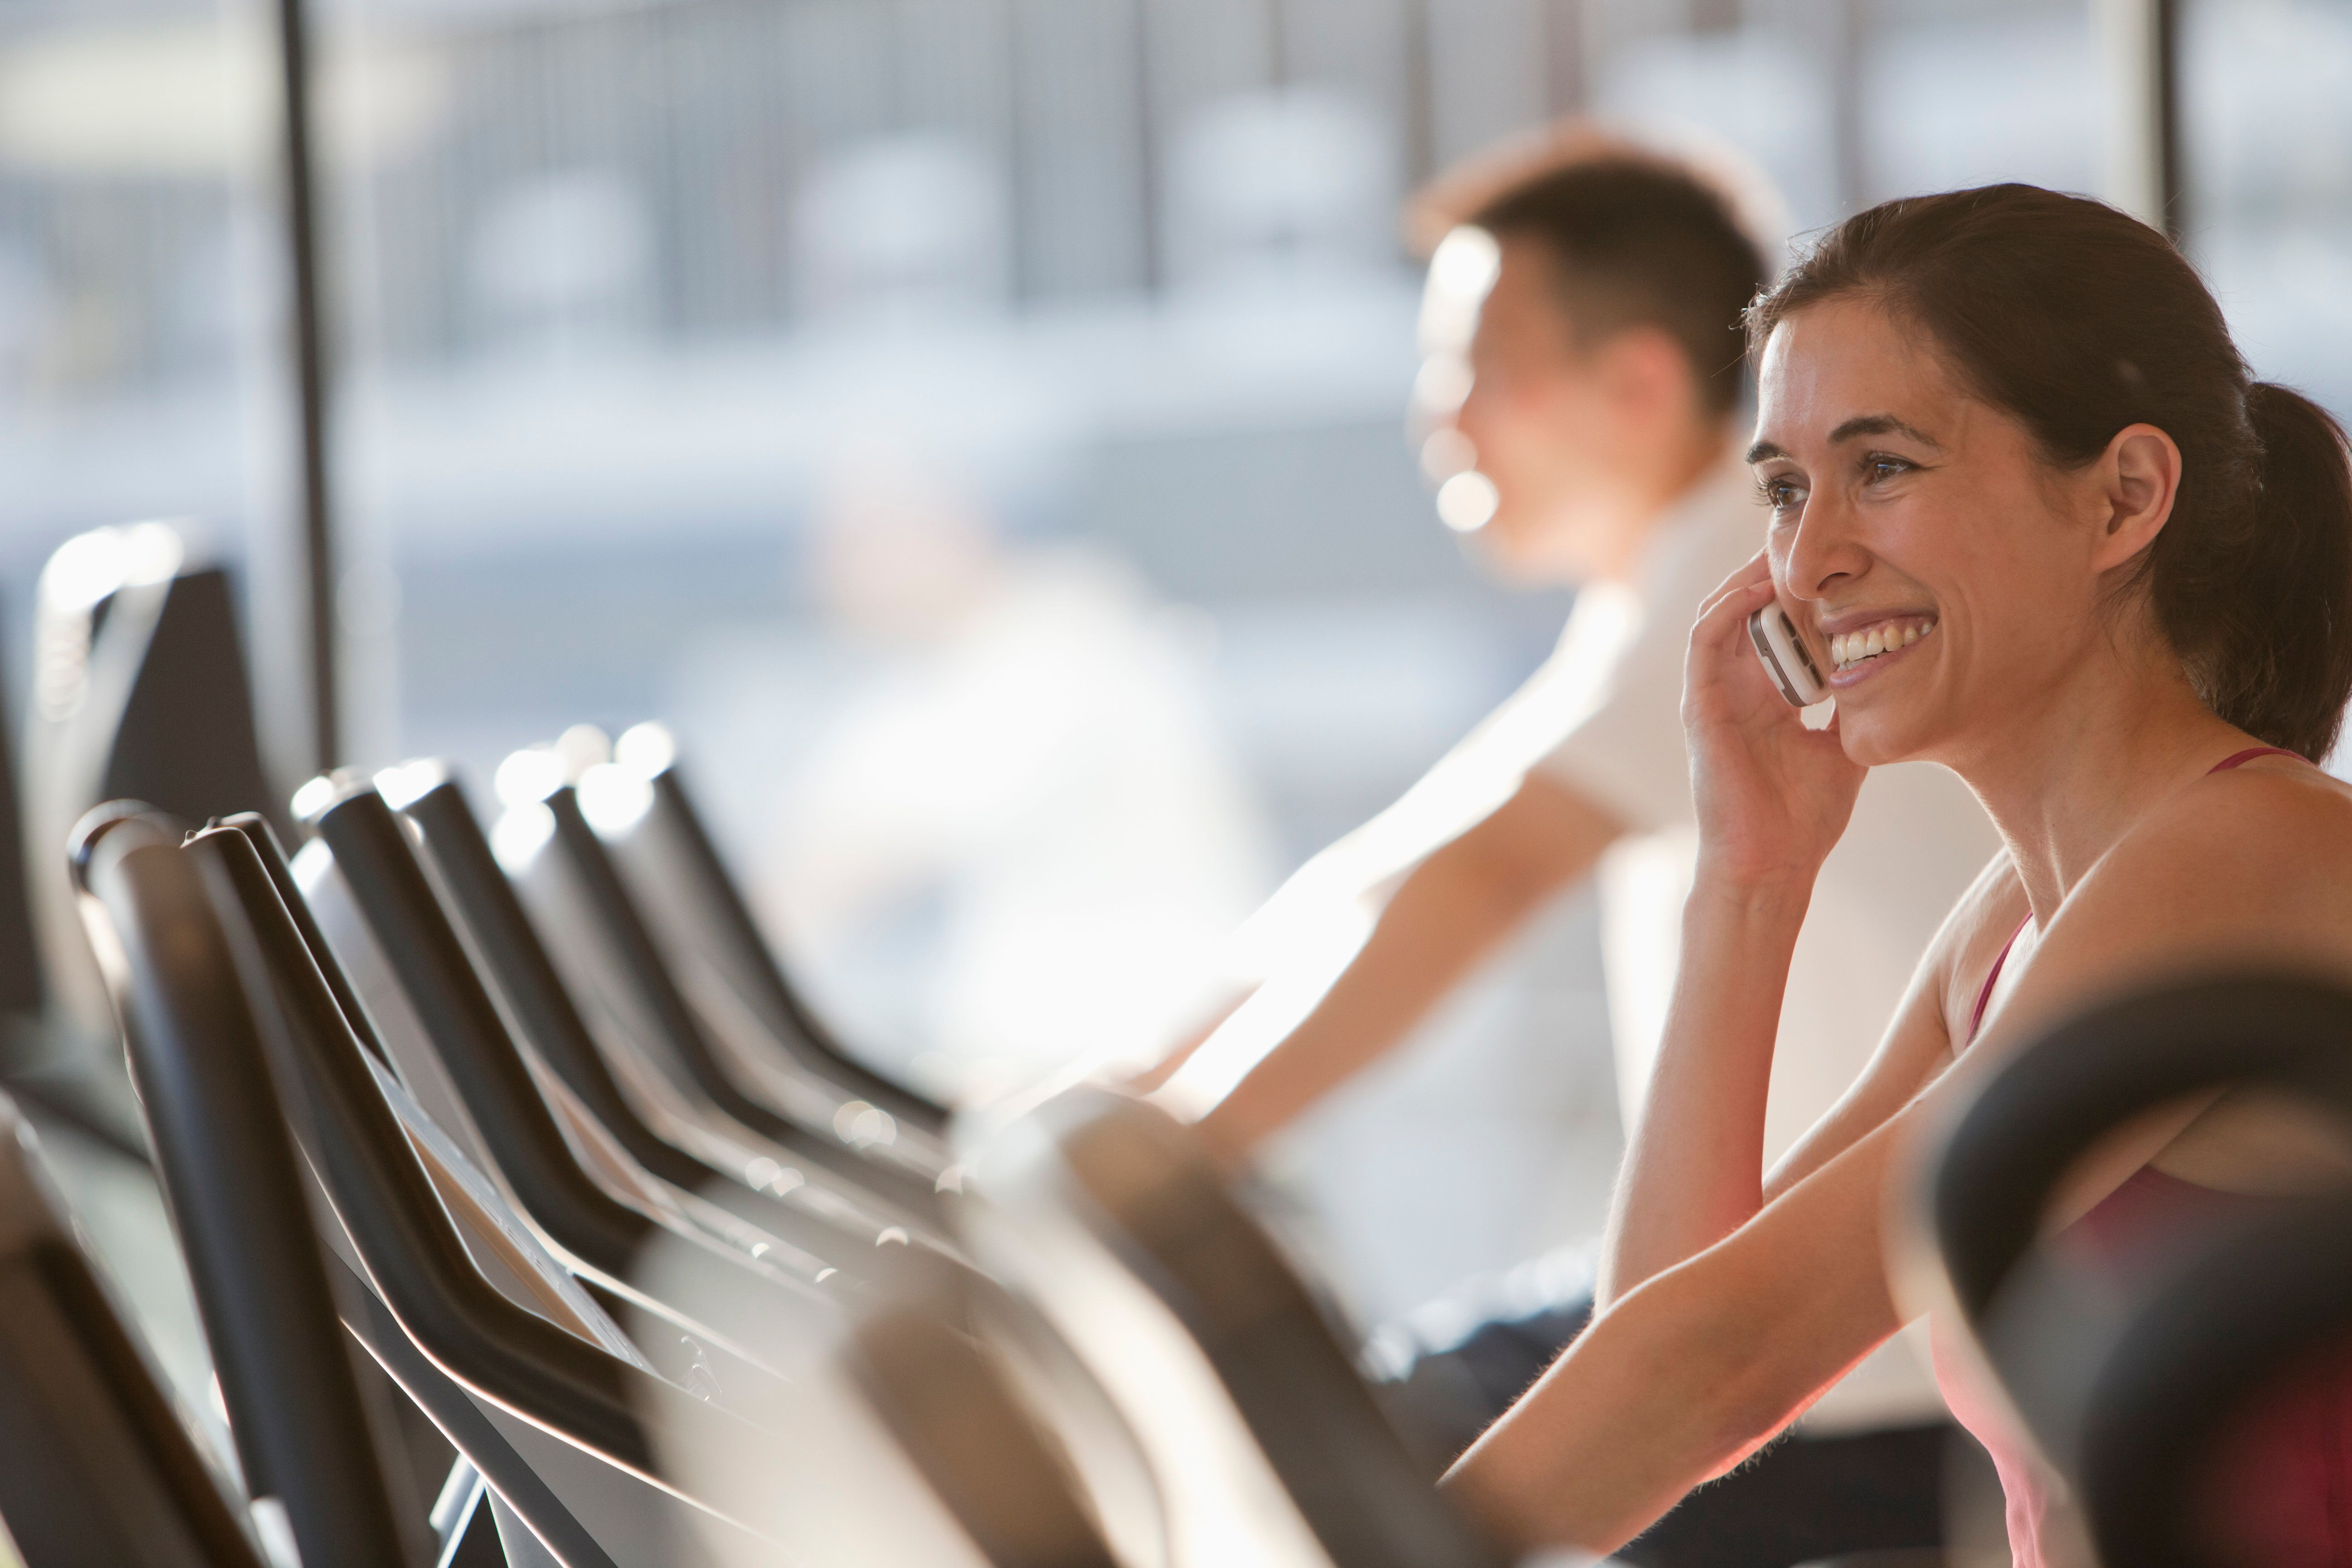 Gym Etiquette: What Not To Do When Working Out With